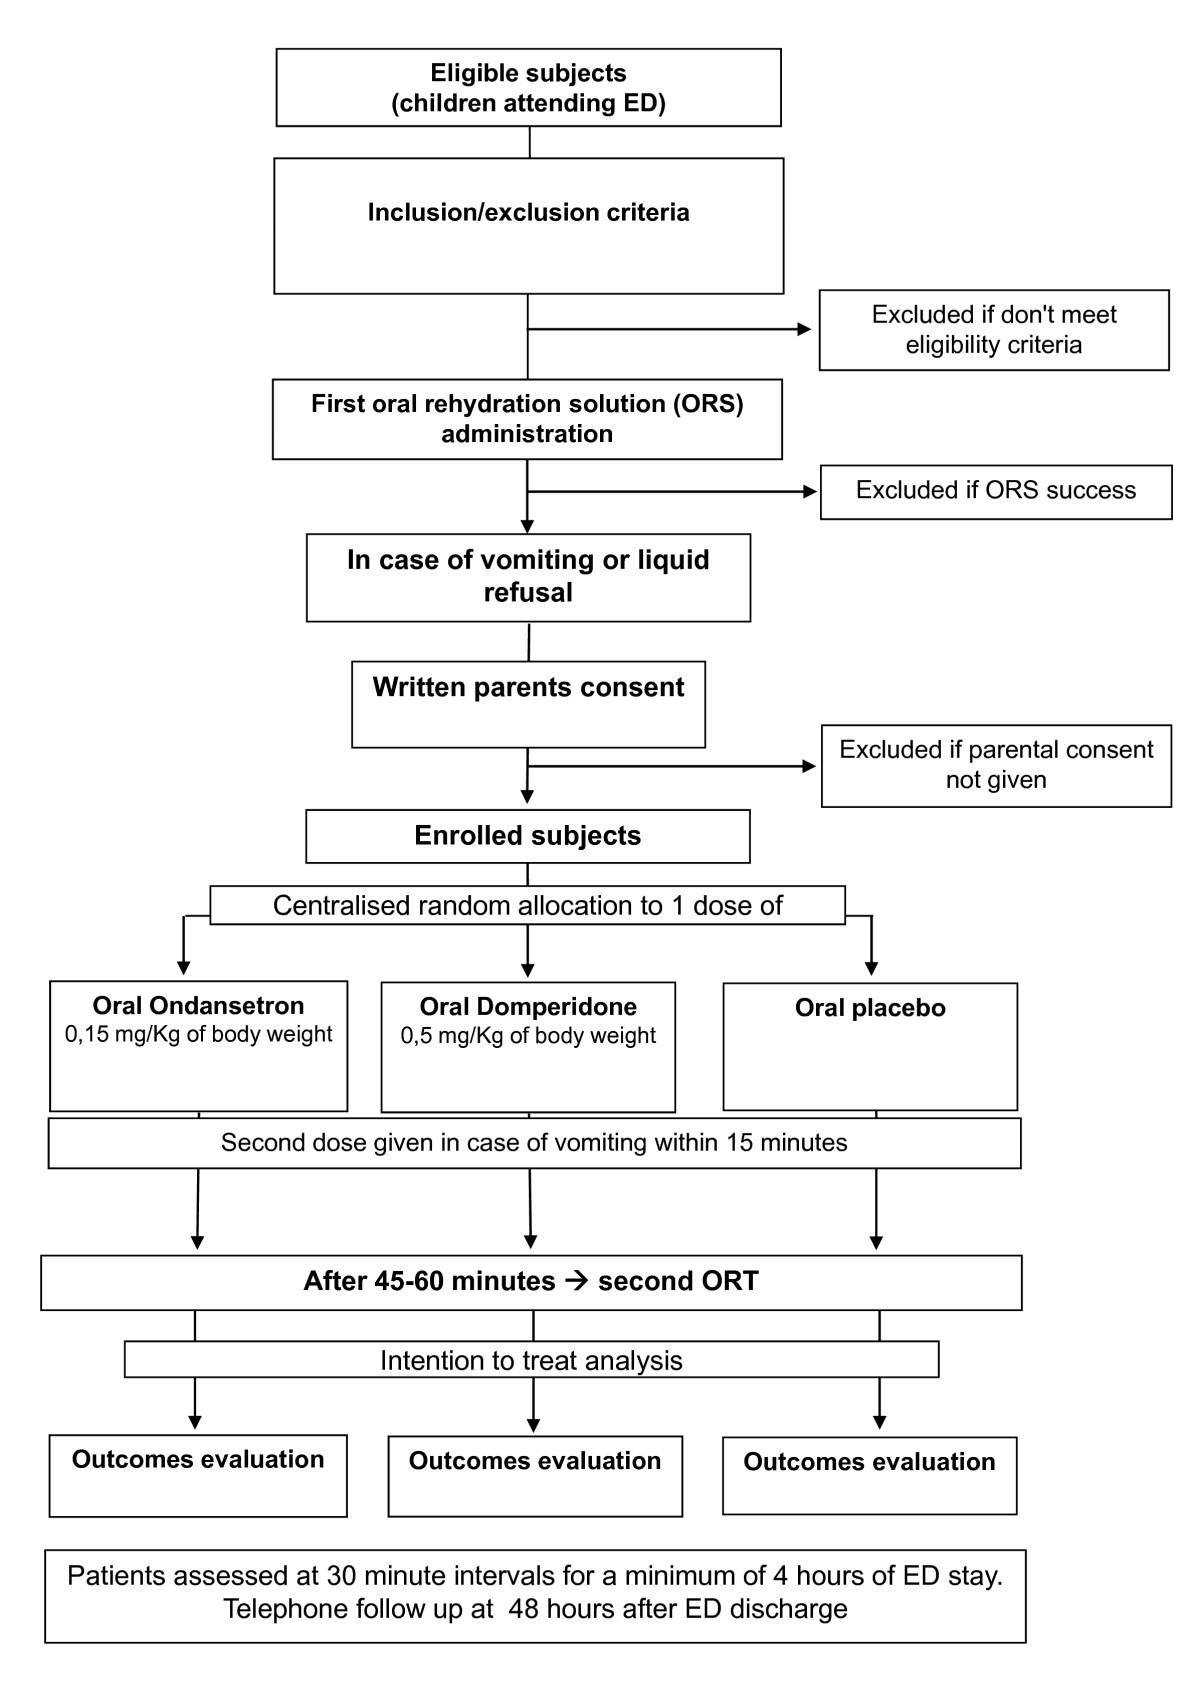 Oral Ondansetron Versus Domperidone For Symptomatic Treatment Of